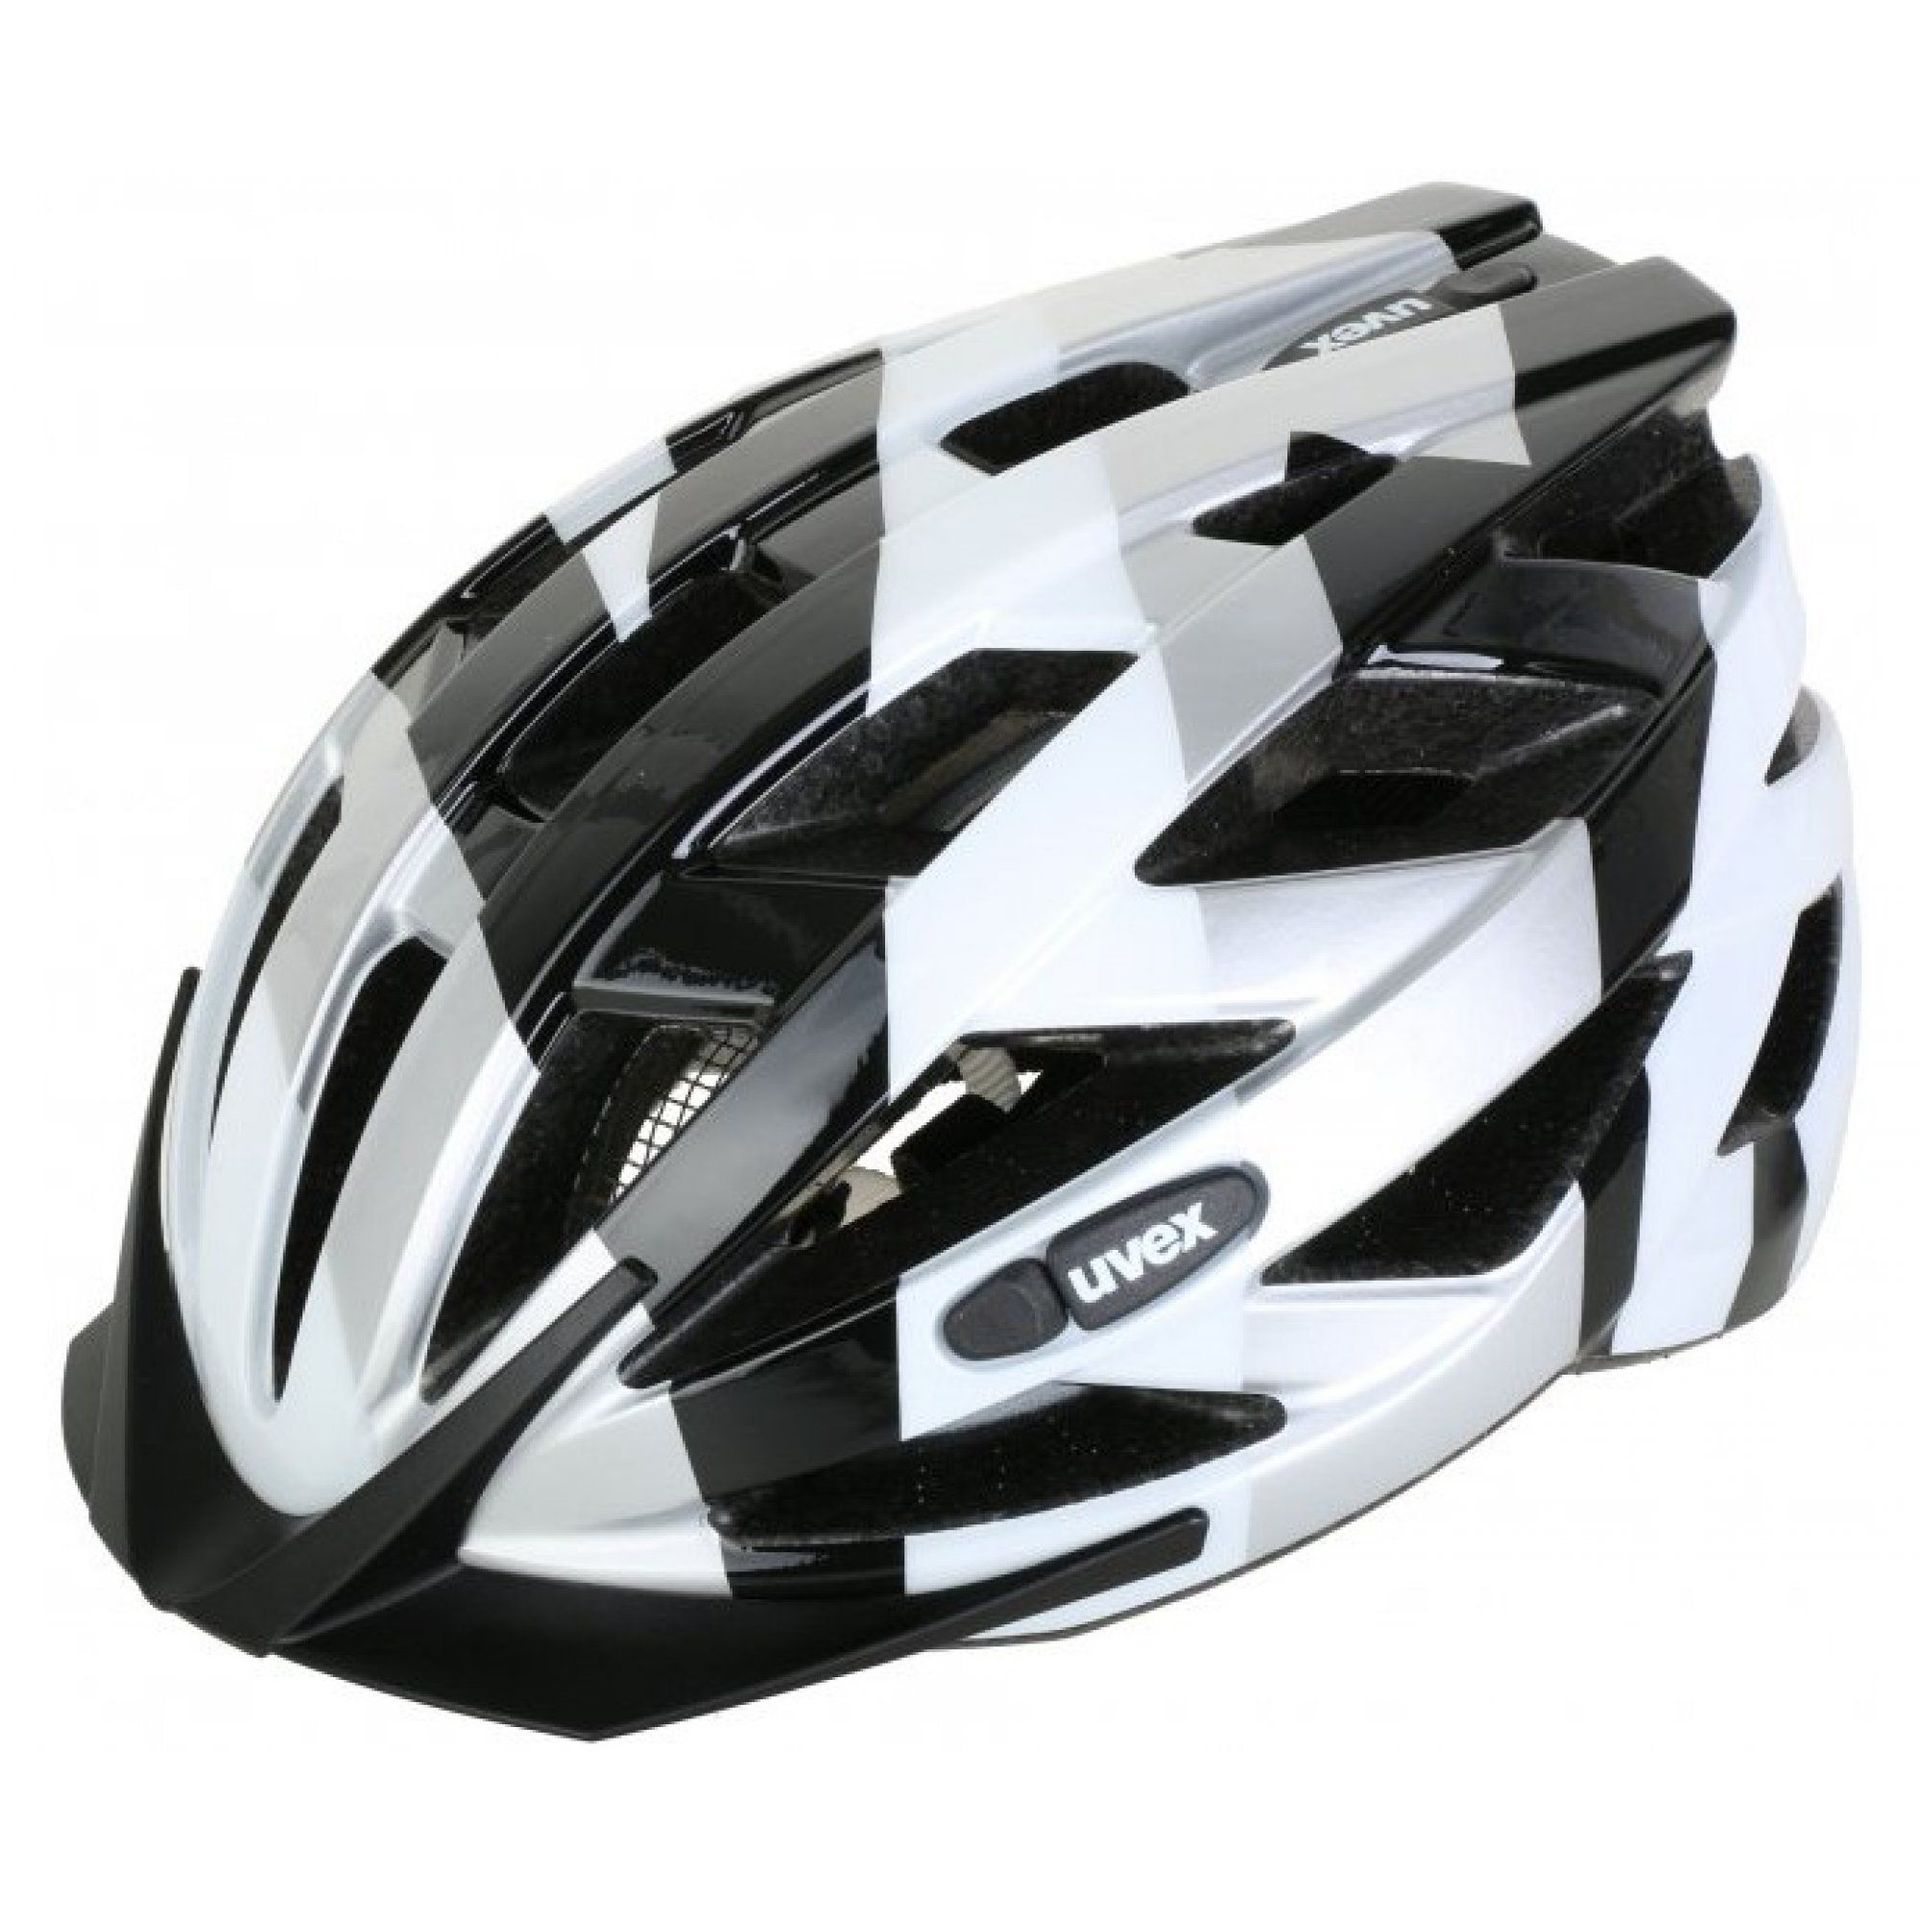 KASK ROWEROWY UVEX AIR WING 2017 BLACK WHITE I